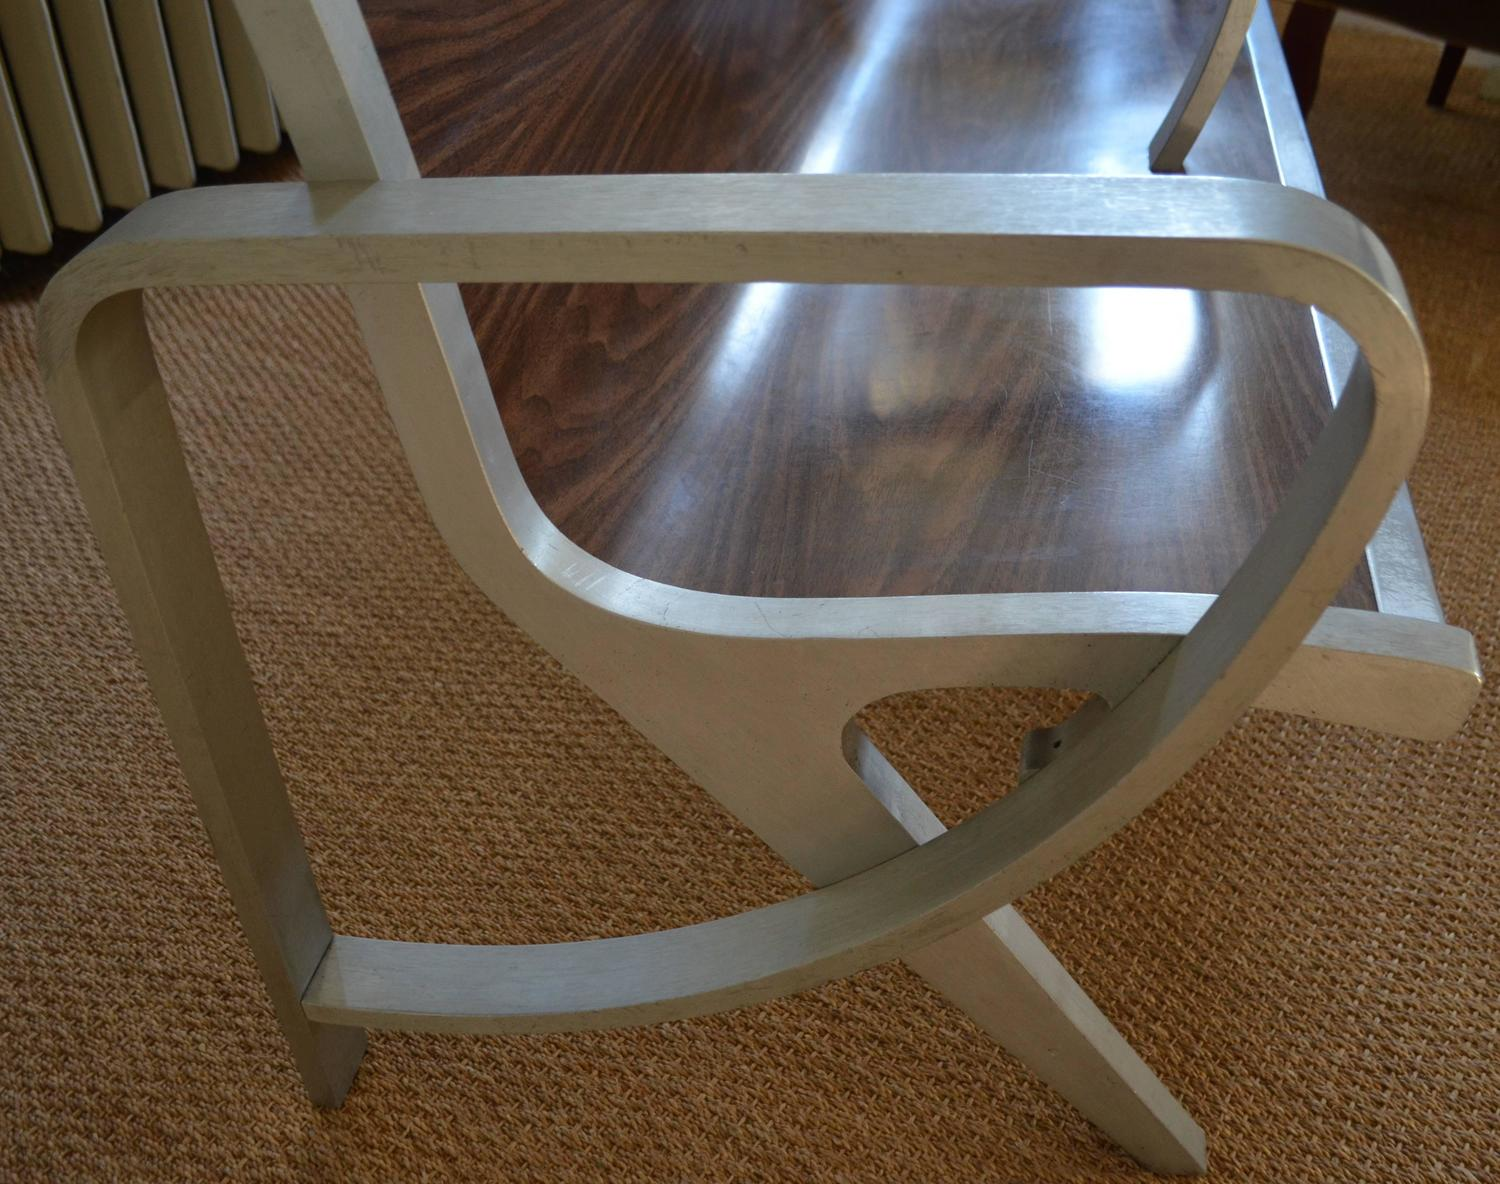 waiting room chairs for sale anti gravity chair costco mid century bench from of train bus depot